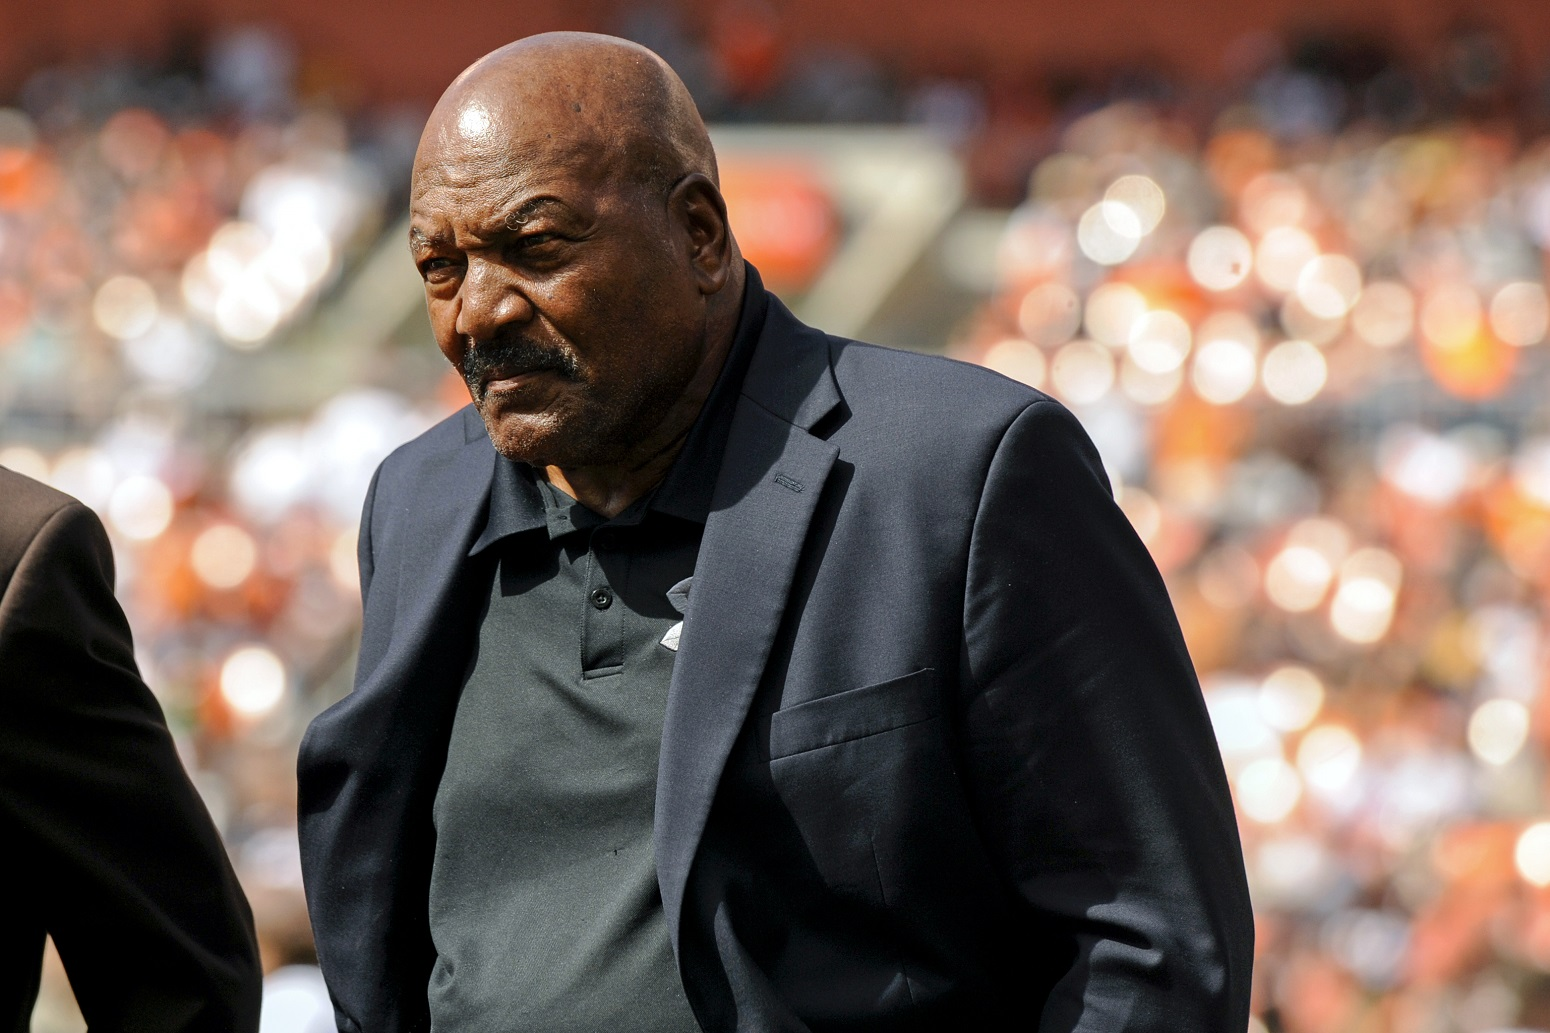 NFL legend Jim Brown once accused extremely dark crimes